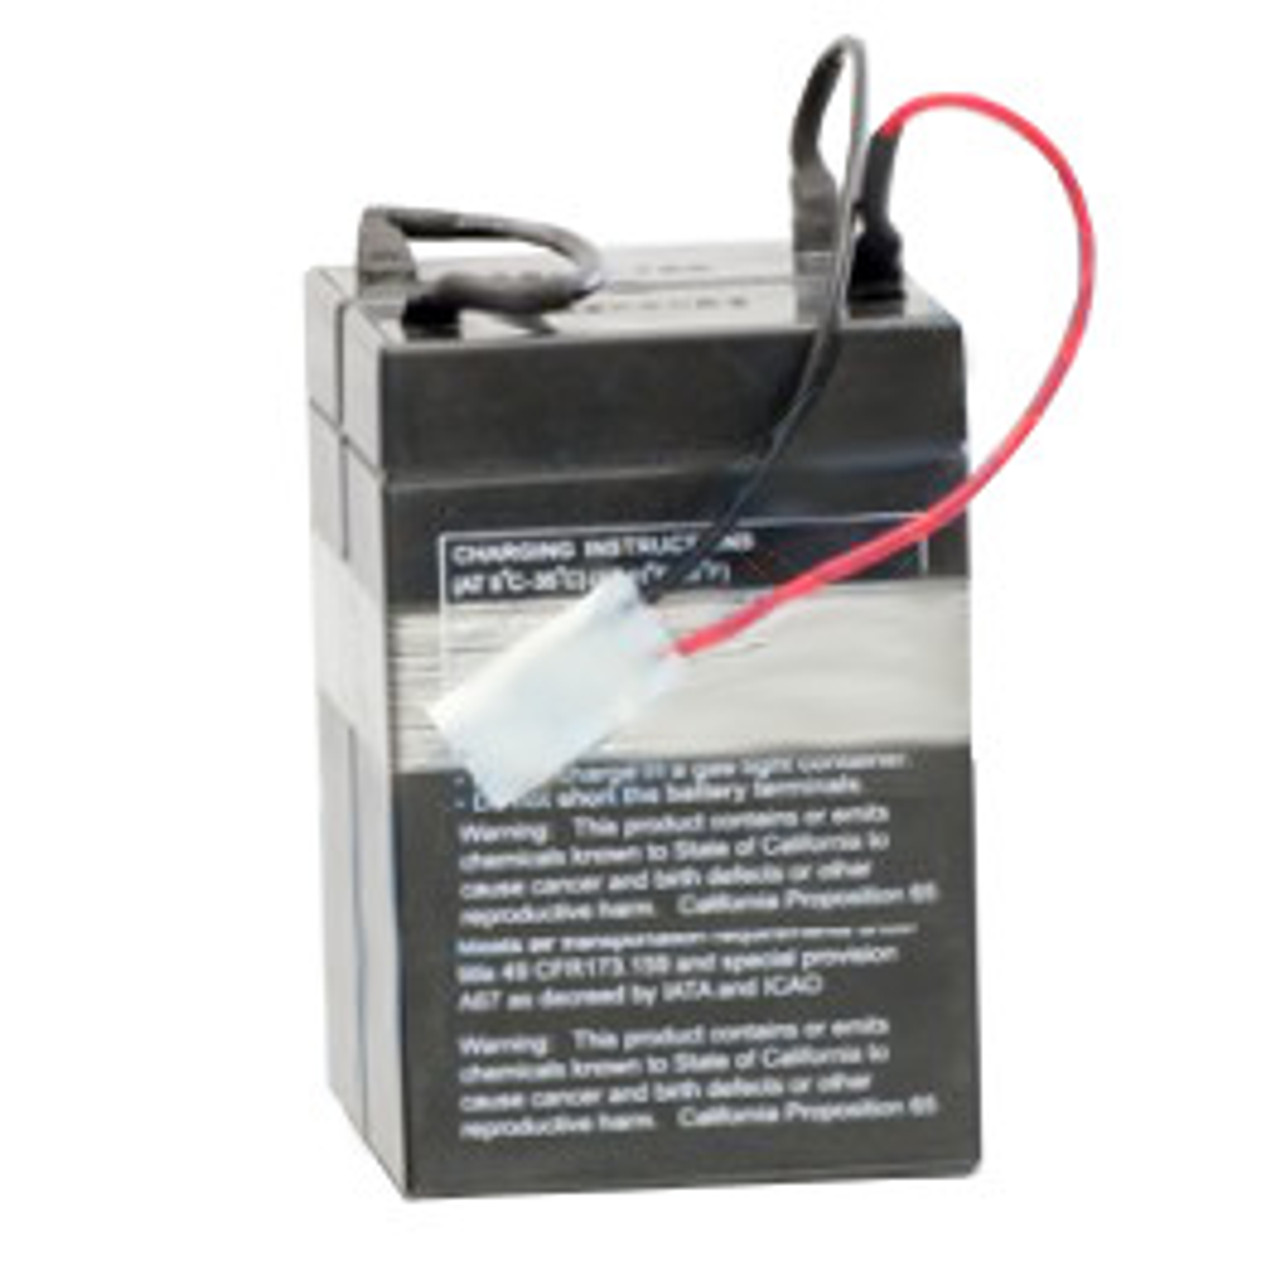 Replacement Battery for 64000 Series SSCORT-3 Suction